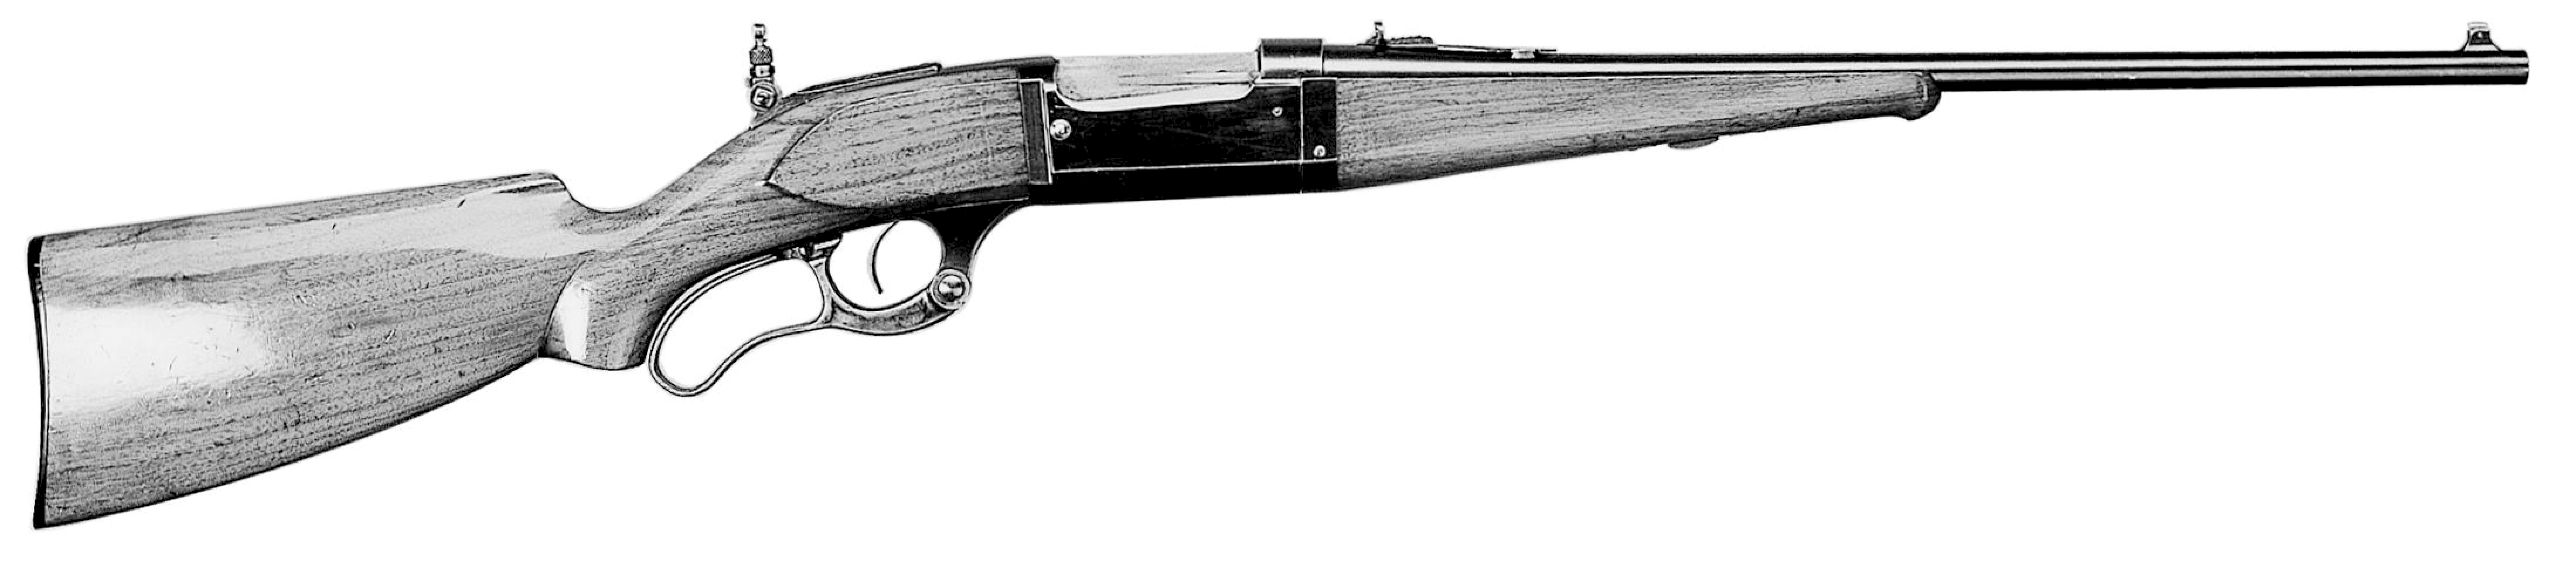 Model 1899-H Featherweight Rifle